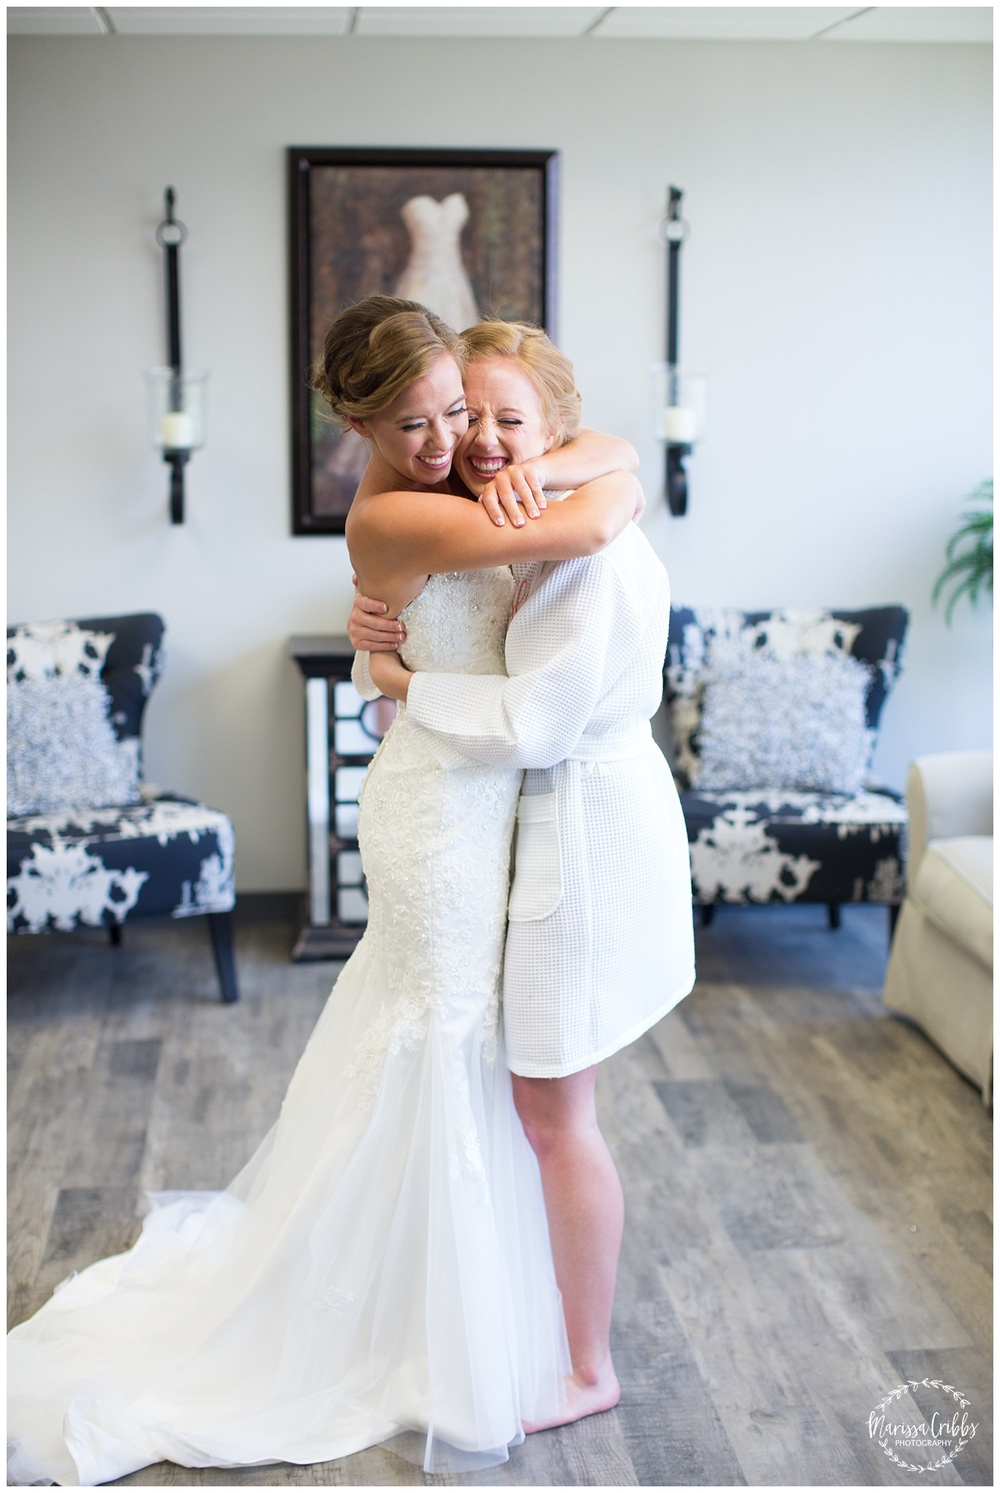 Twin Double Wedding | Union Horse Distilling Co. | Marissa Cribbs Photography | KC Weddings_0026.jpg